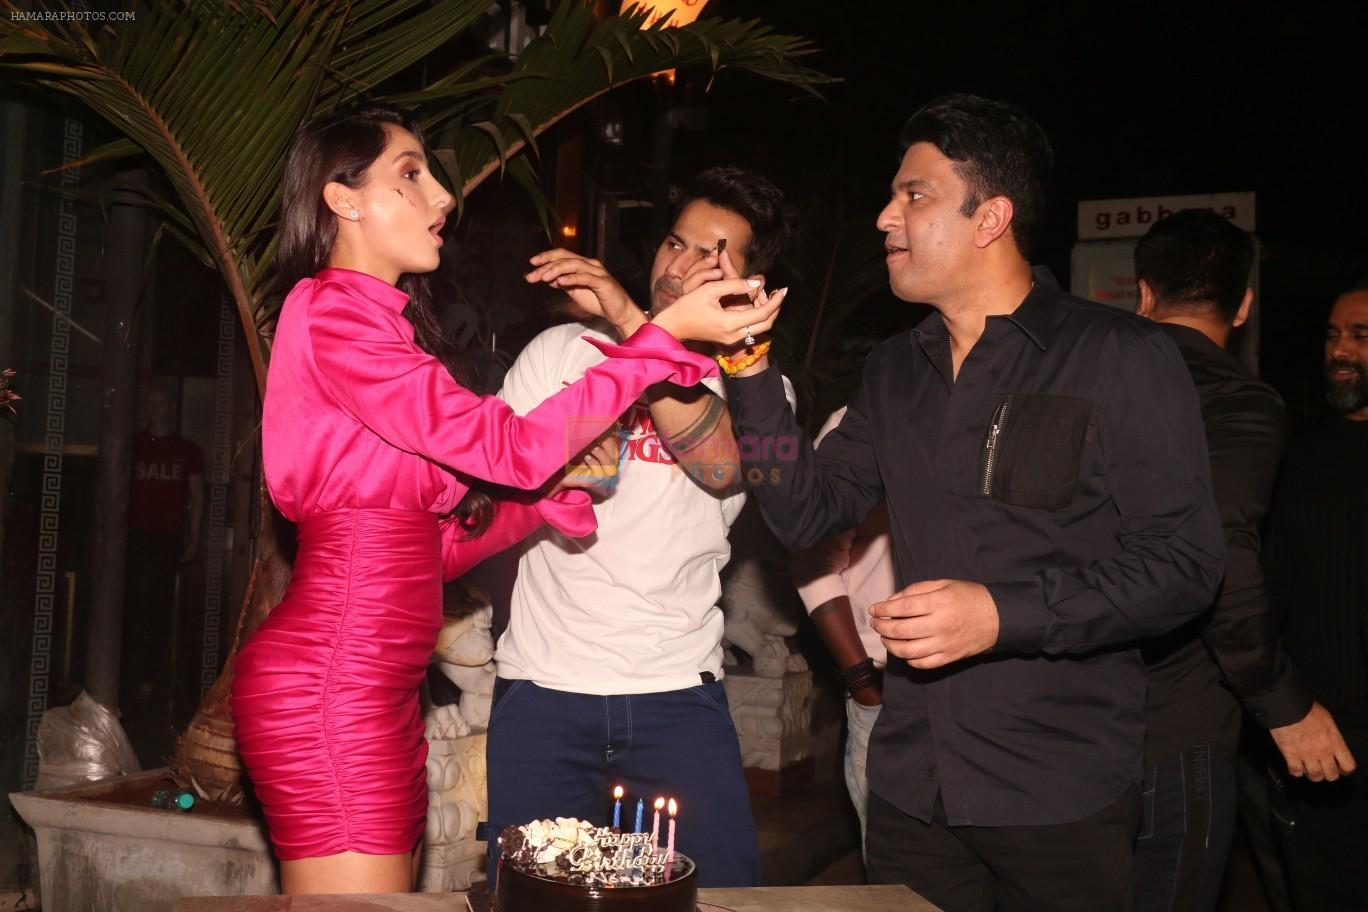 Nora Fatehi, Varun Dhawan, Bhushan Kumar at Nora Fatehi's birthday party in bandra on 5th Feb 2019